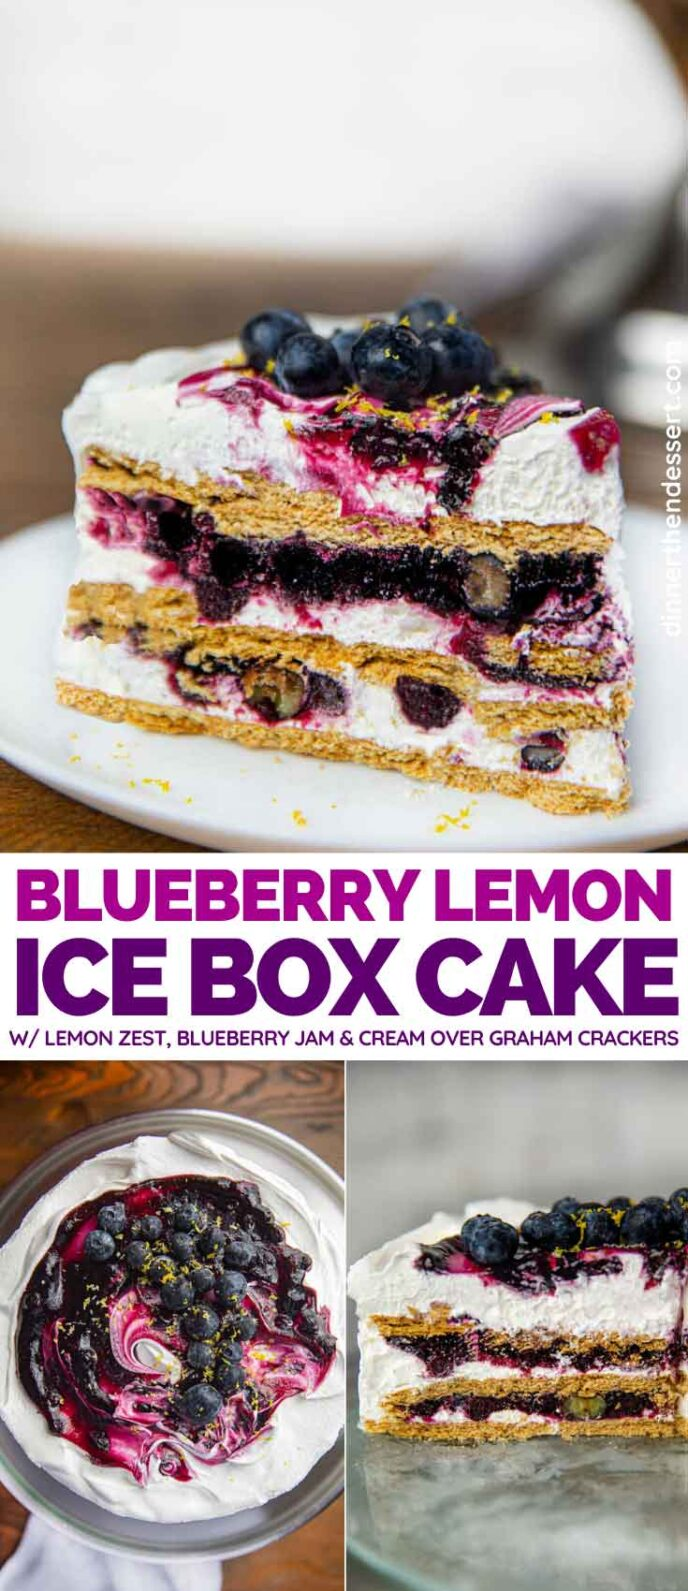 Blueberry Lemon Icebox Cake collage